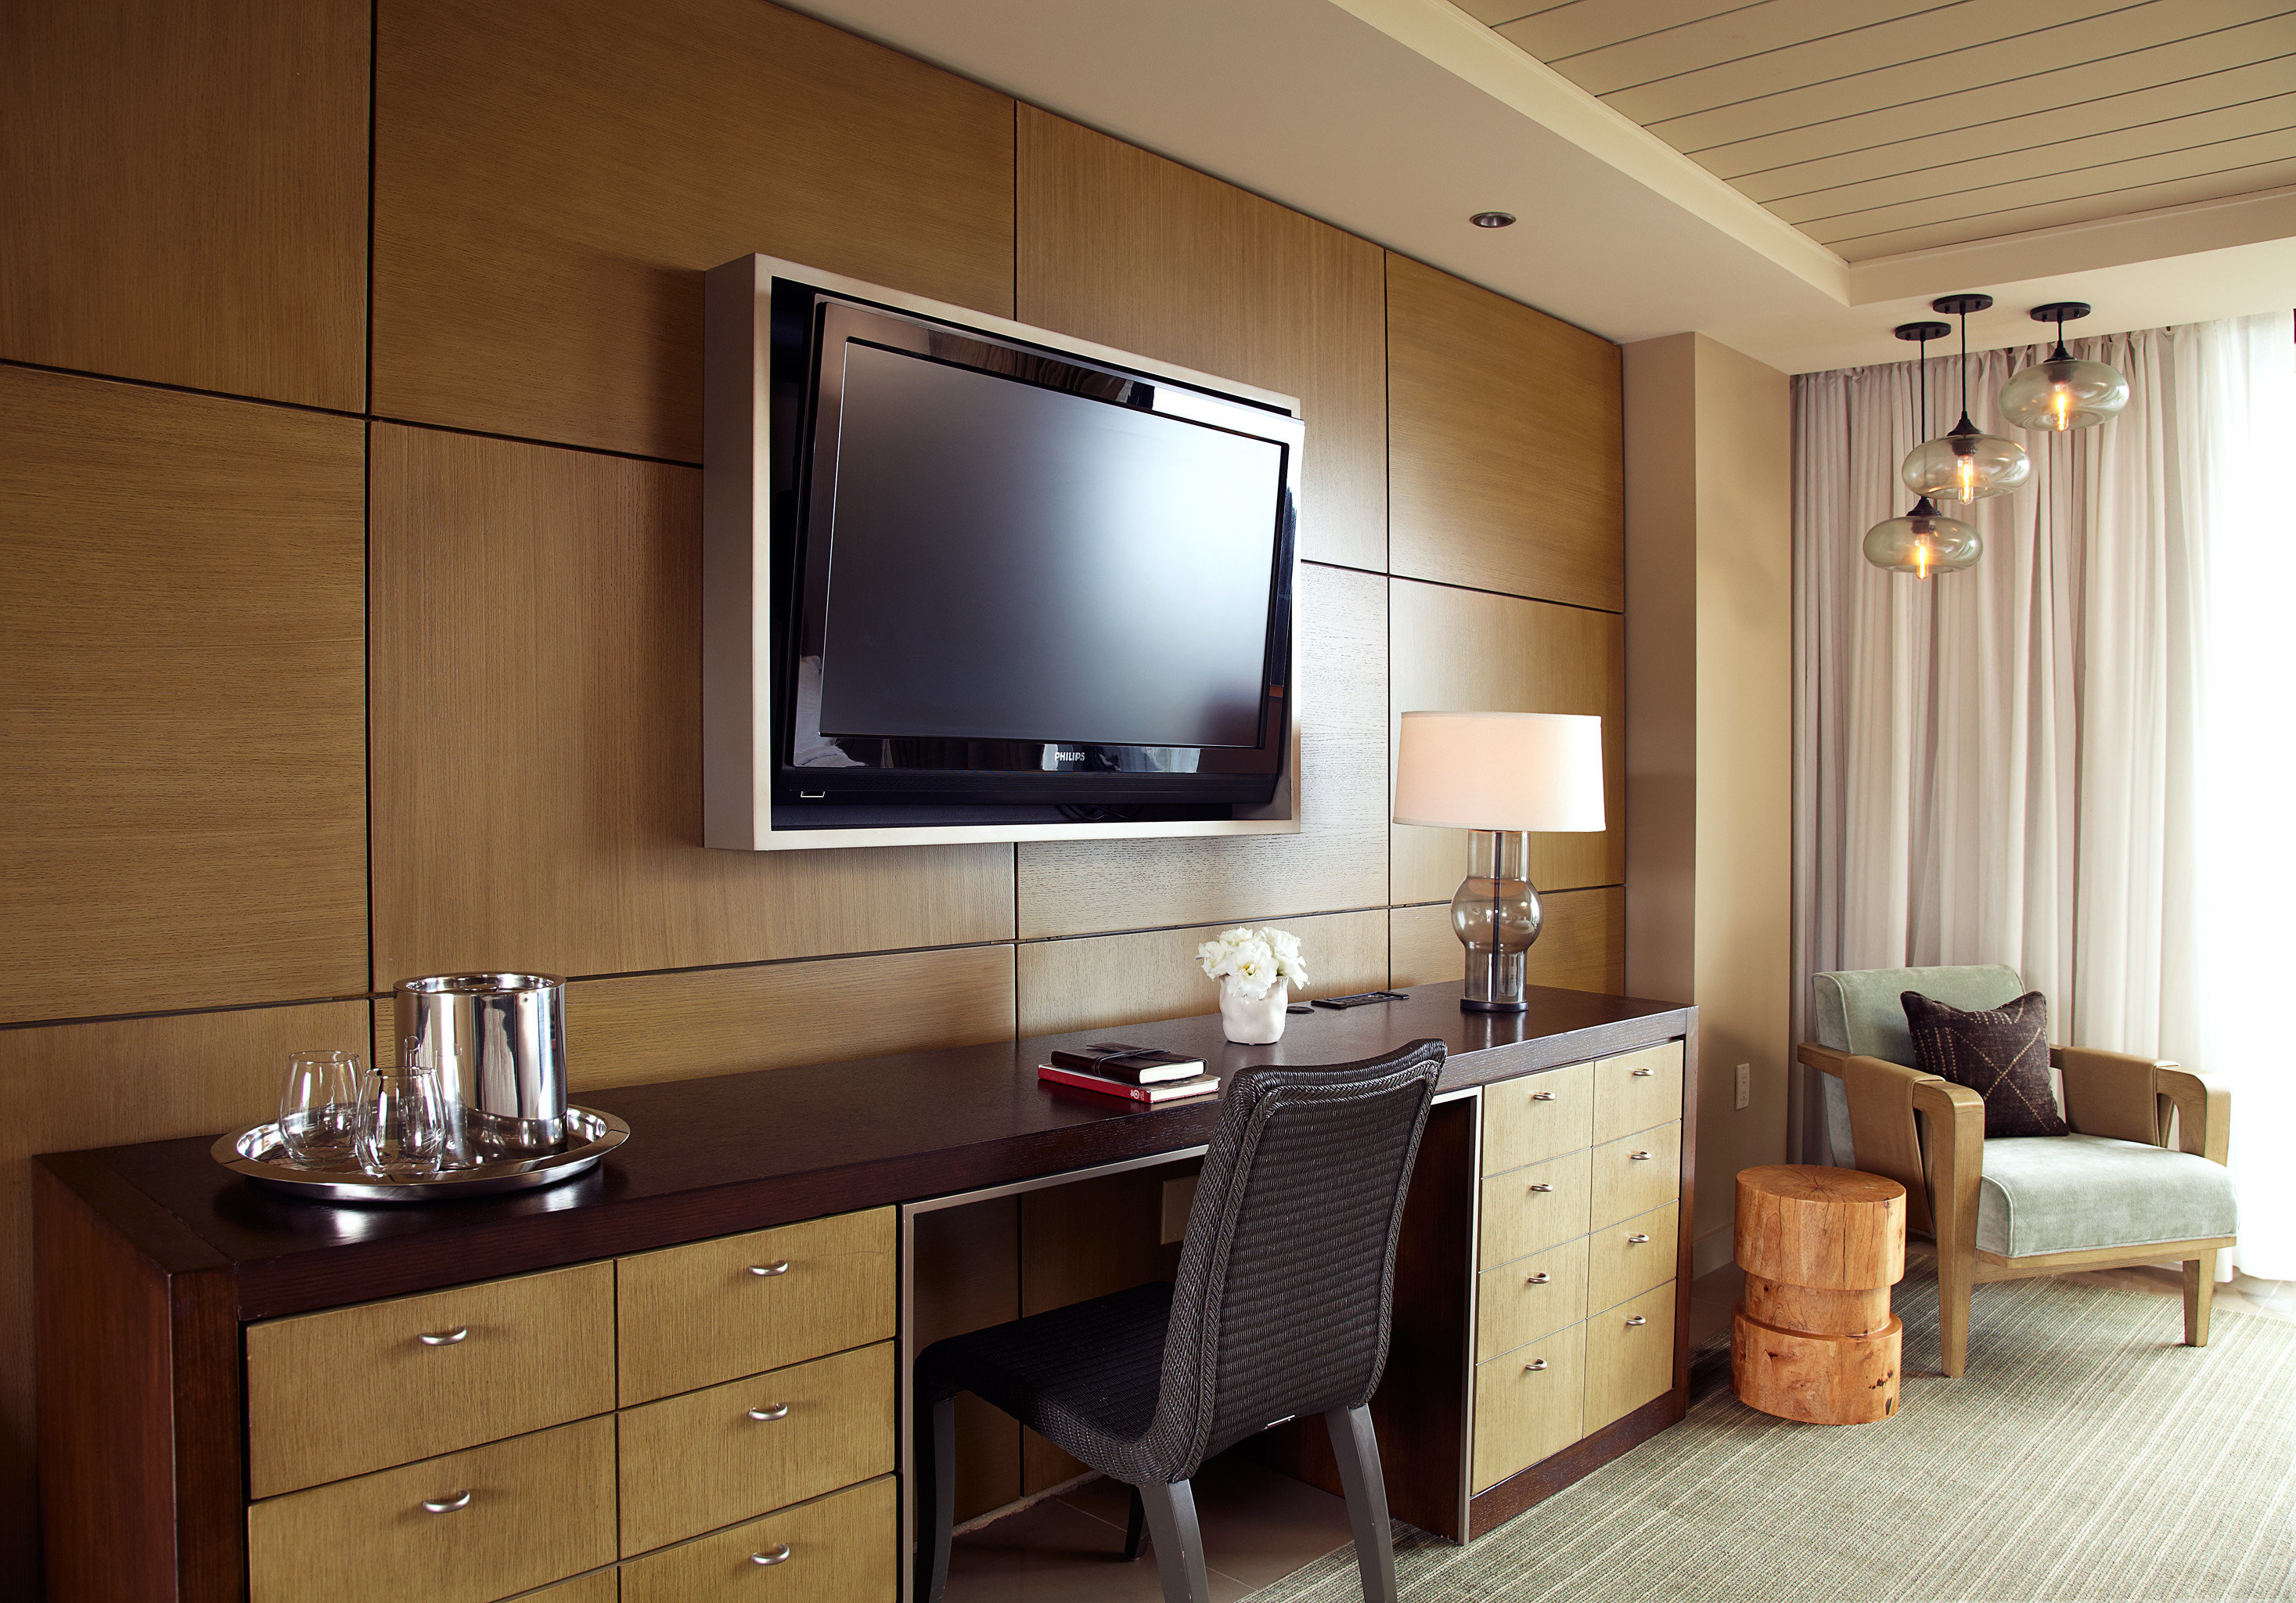 Bedroom Entertainment property bathroom cabinetry home Suite living room flat